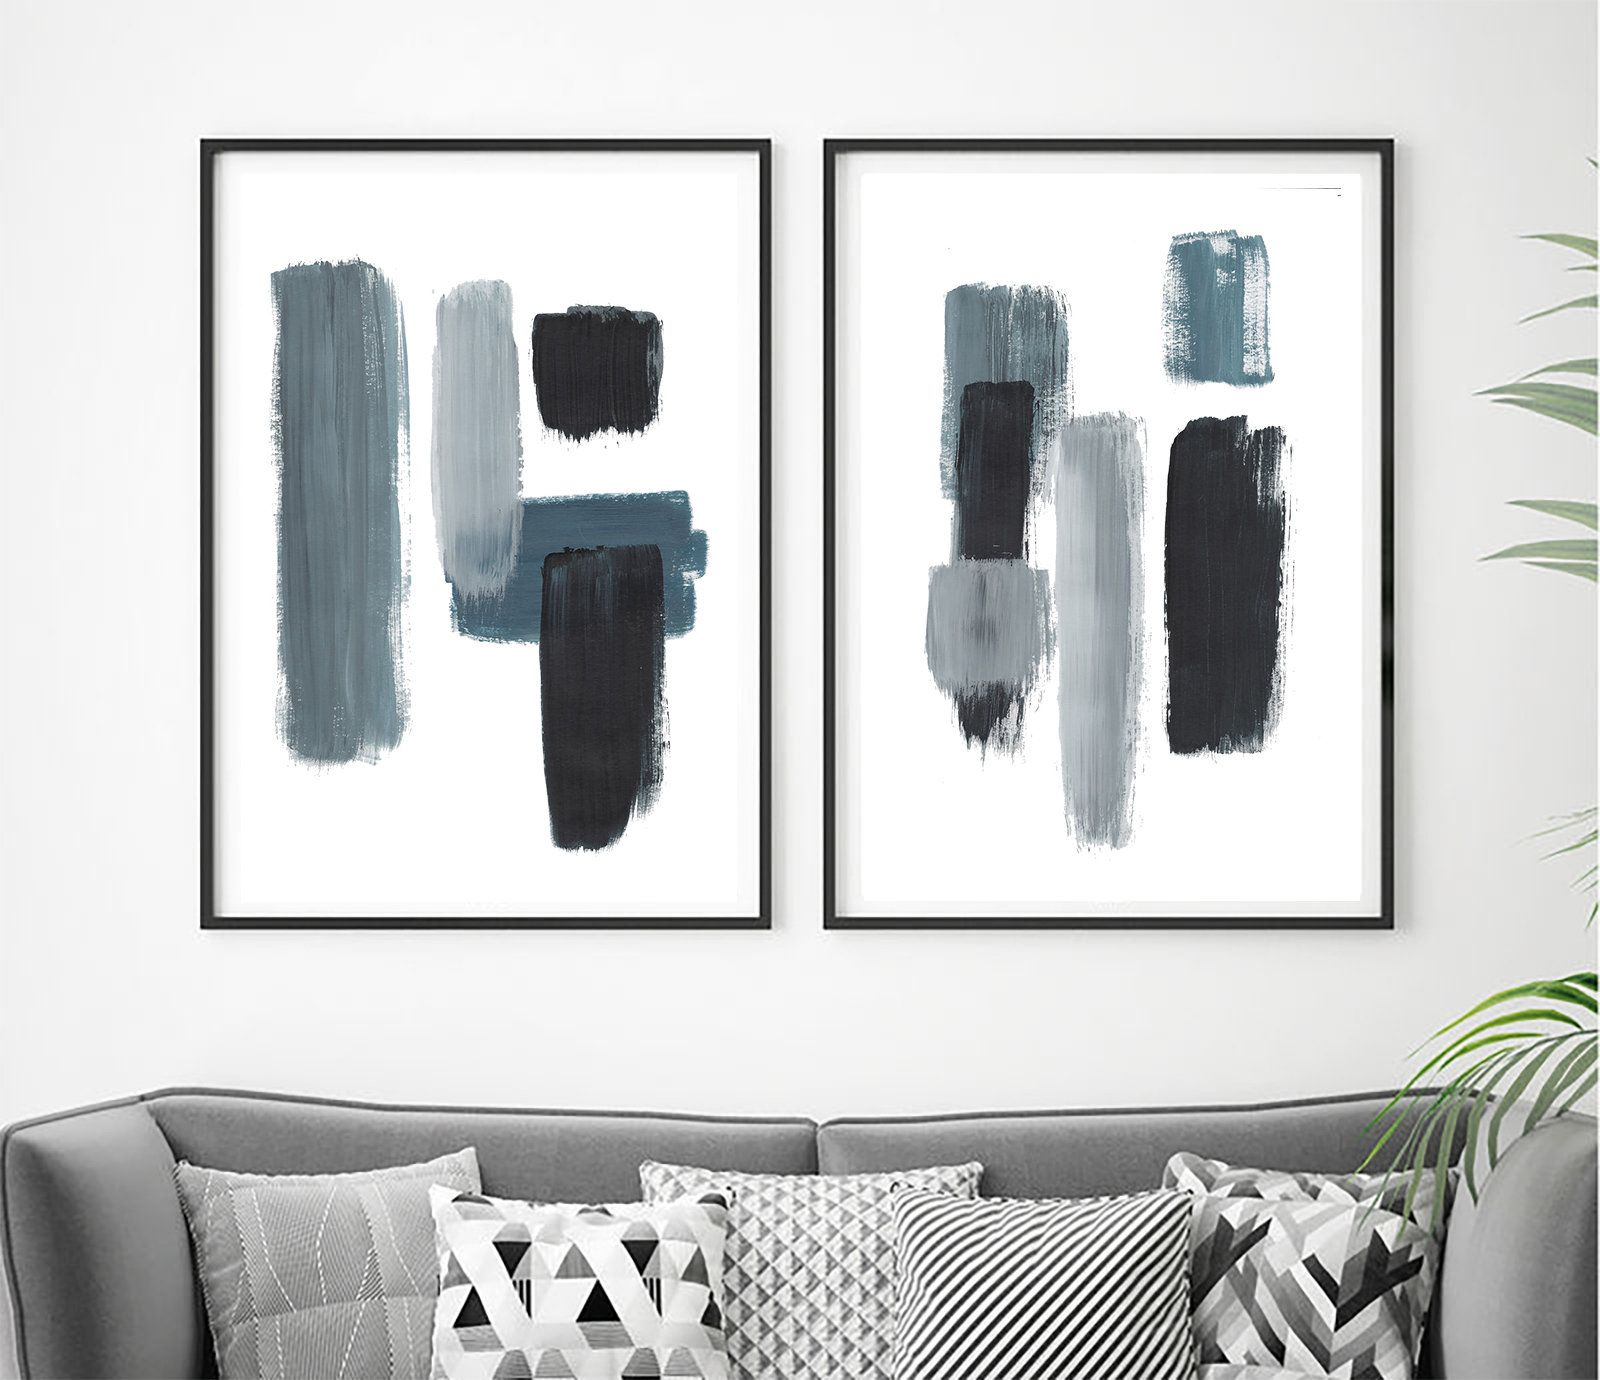 Set Of 2 Minimalist Prints Set Of 2 Prints Set Of 2 Wall Etsy In 2021 Minimalist Prints Blue Abstract Art Abstract Prints